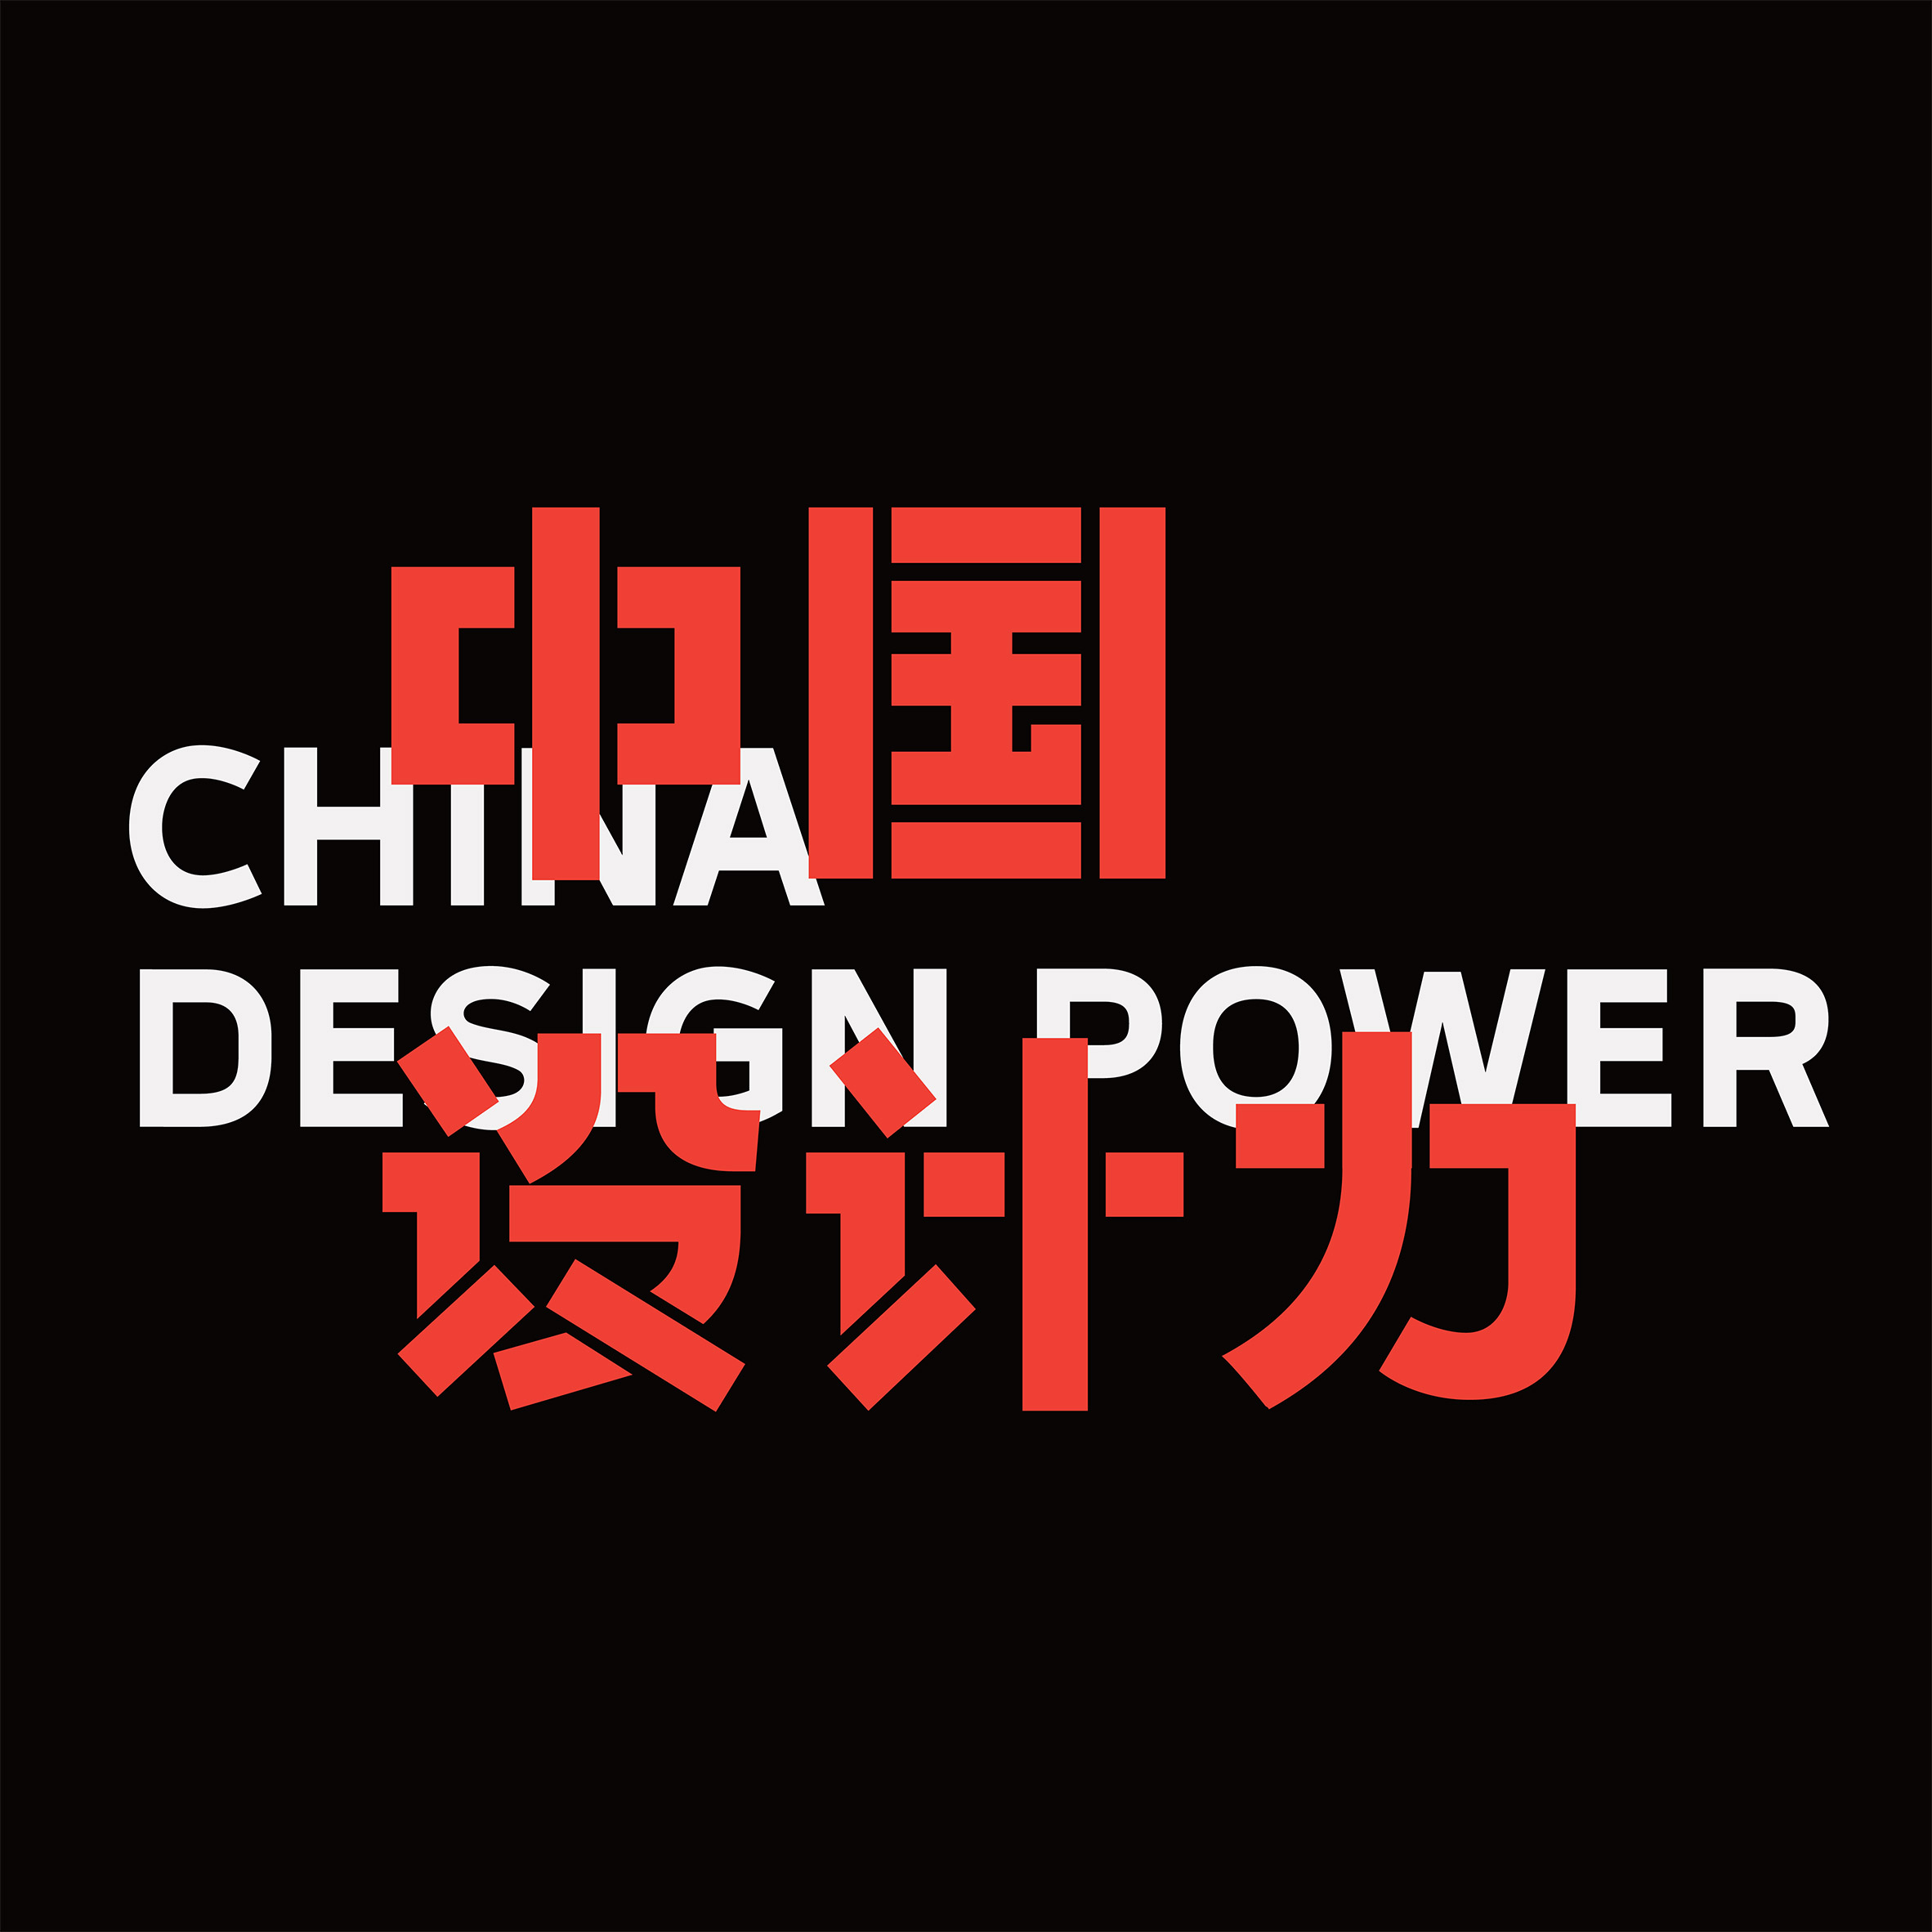 China Is Becoming A Creative Superpower In Design Says Marcus Fairs